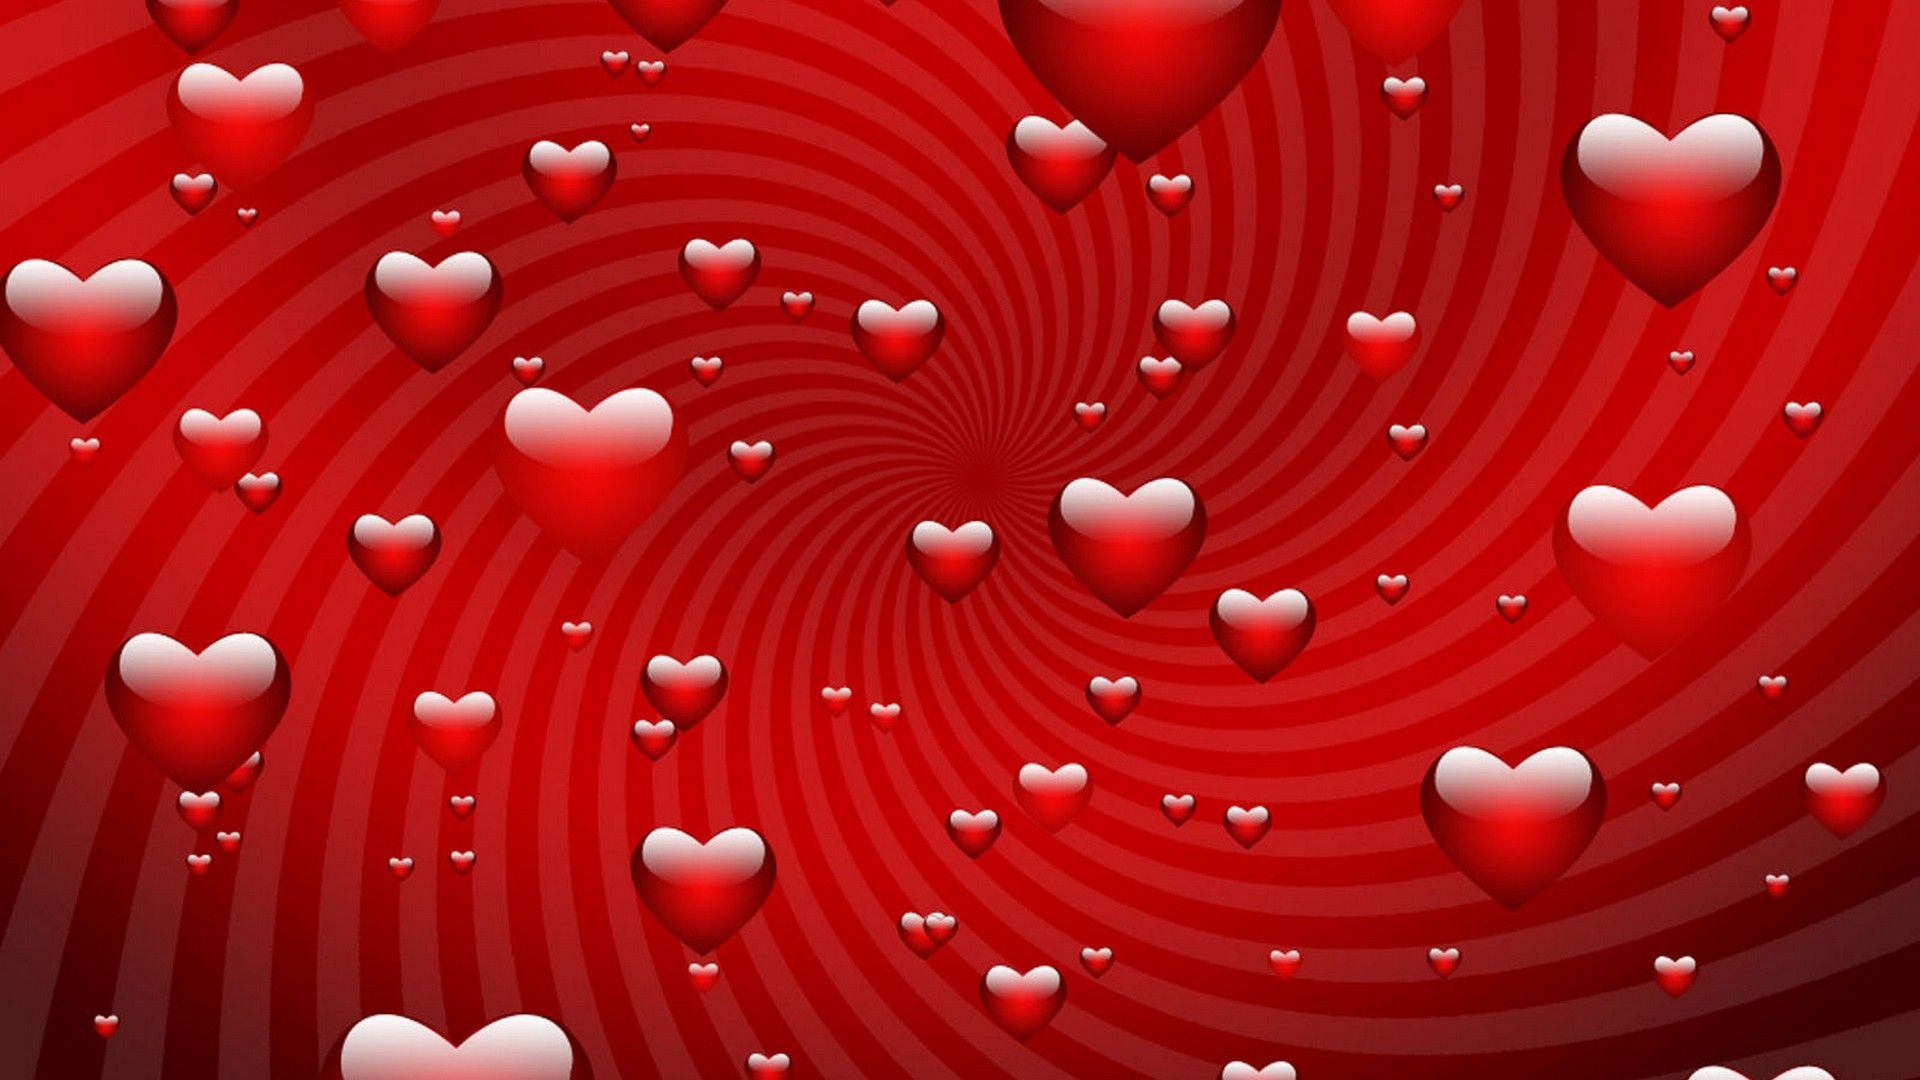 Heart picture hd